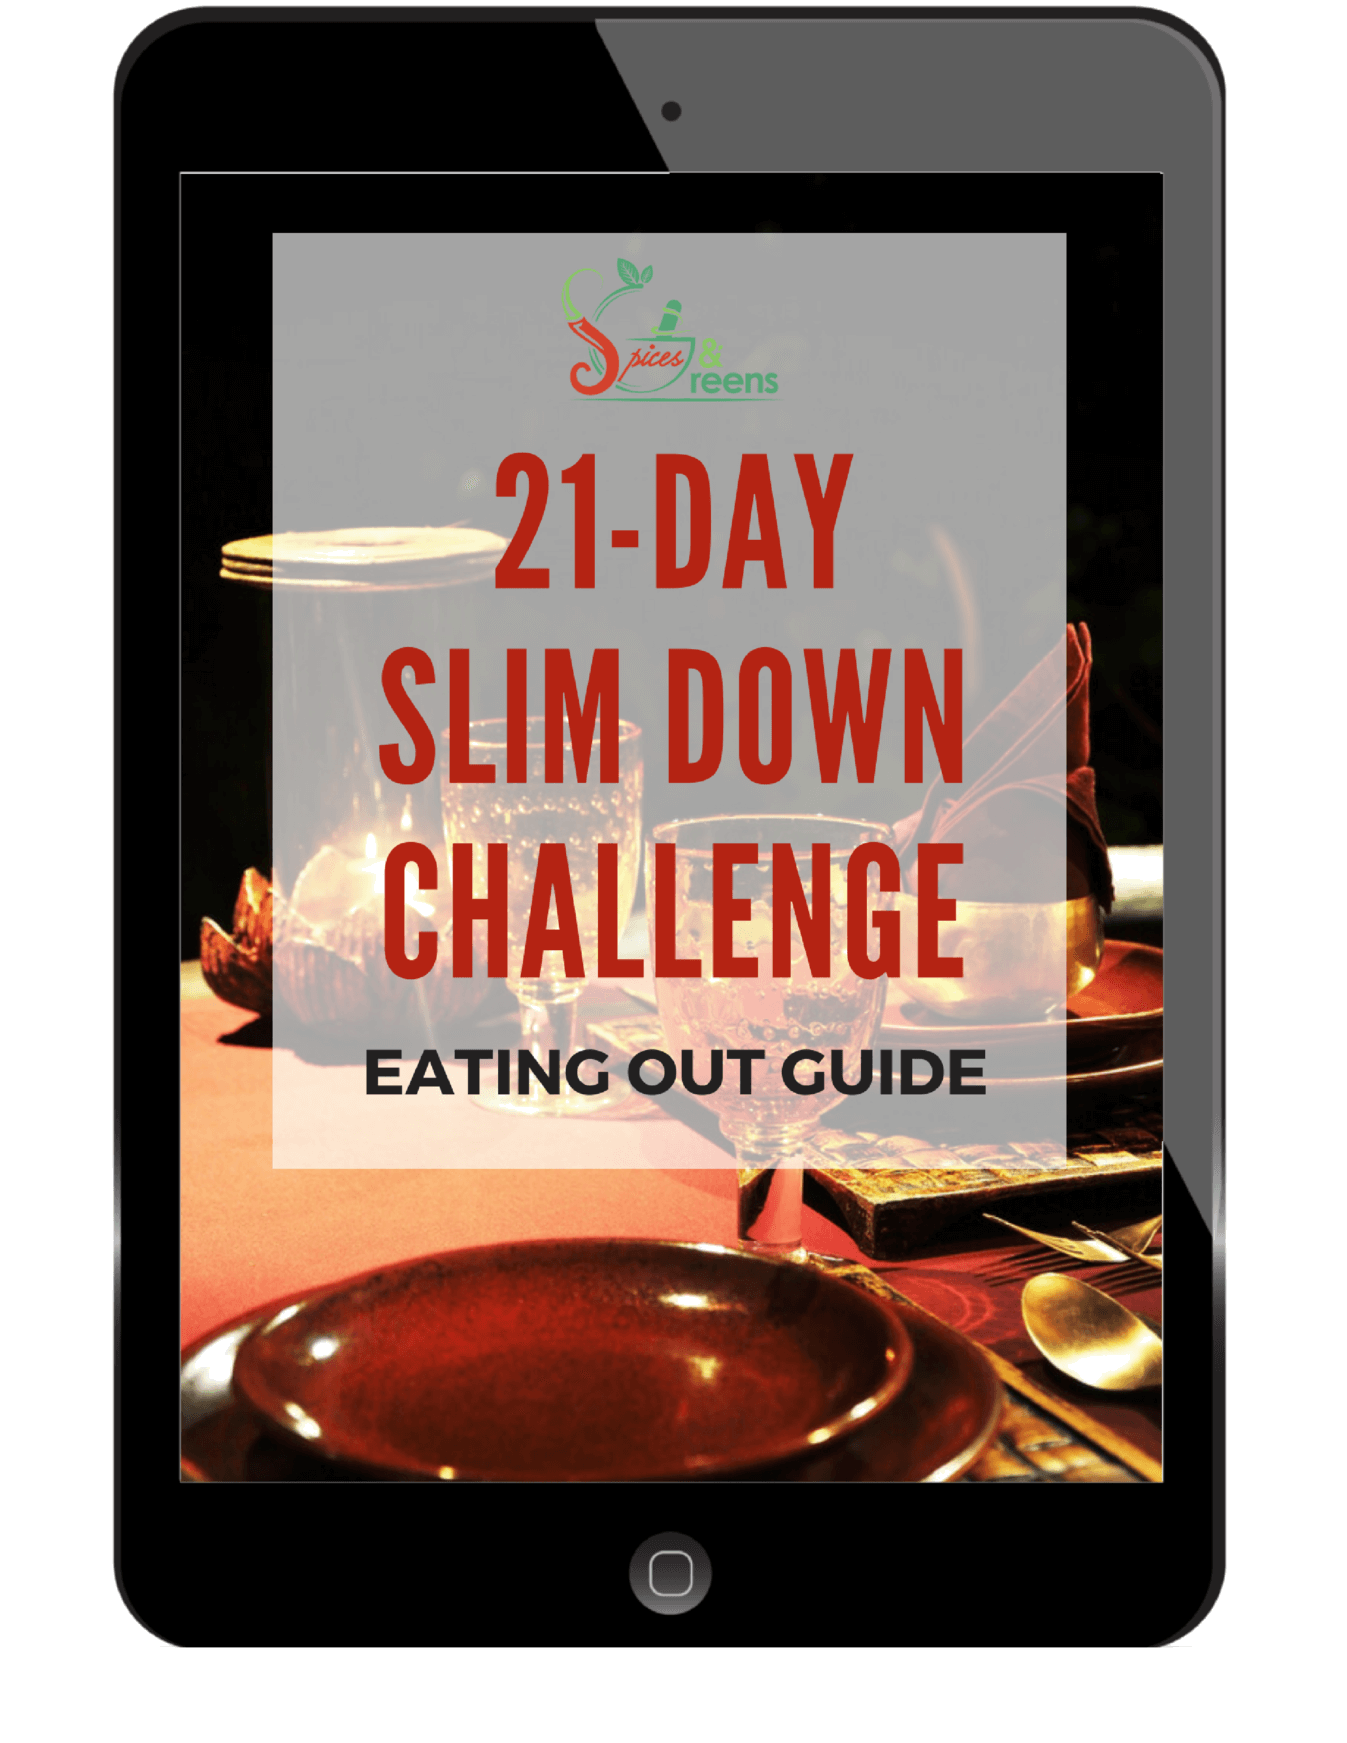 21-Day Slim Down Eating Out Guide